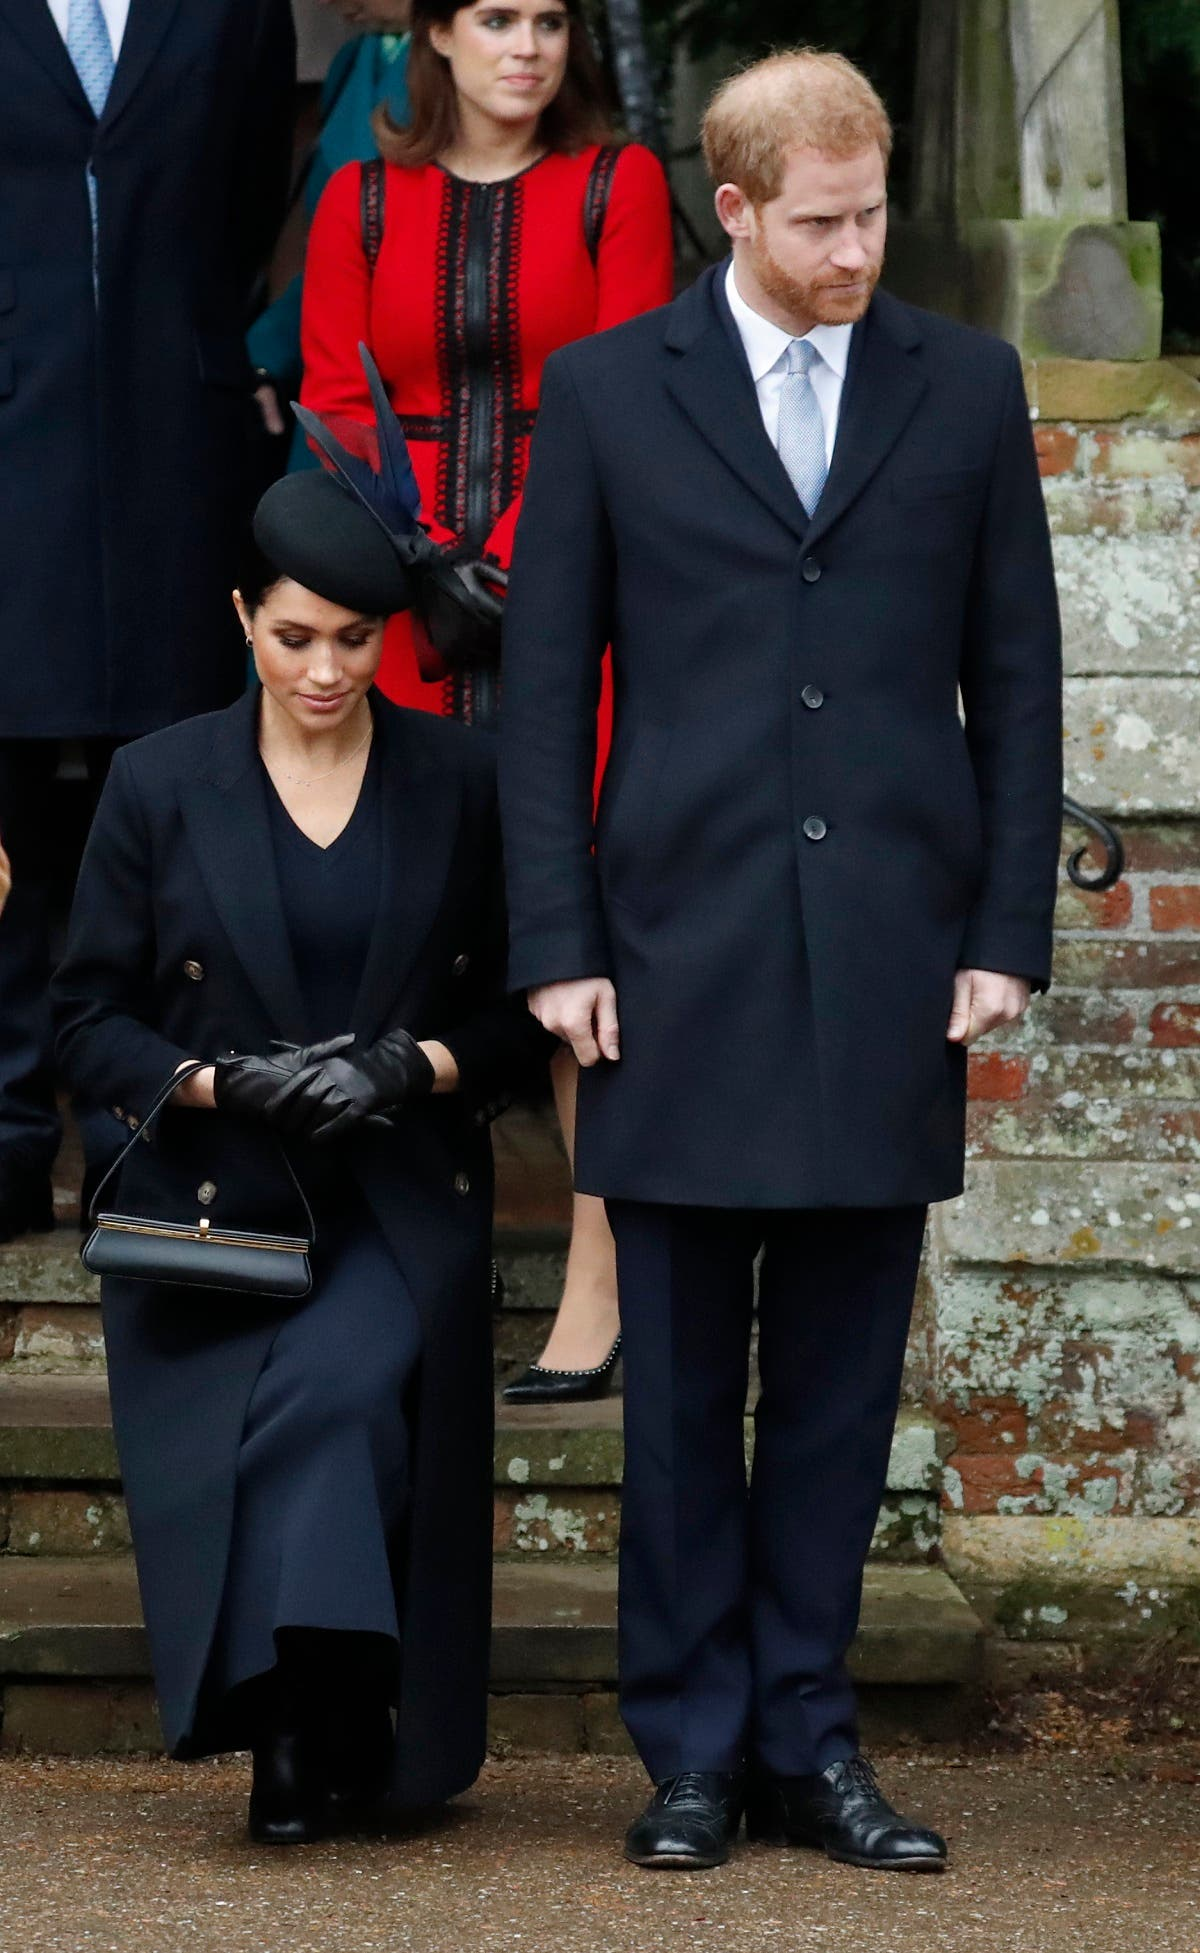 Britain's Prince Harry, stands with Meghan, Duchess of Sussex as she does a curtsy to Britain's Queen Elizabeth II as she leaves in a car after attending the Christmas day service. (AP)